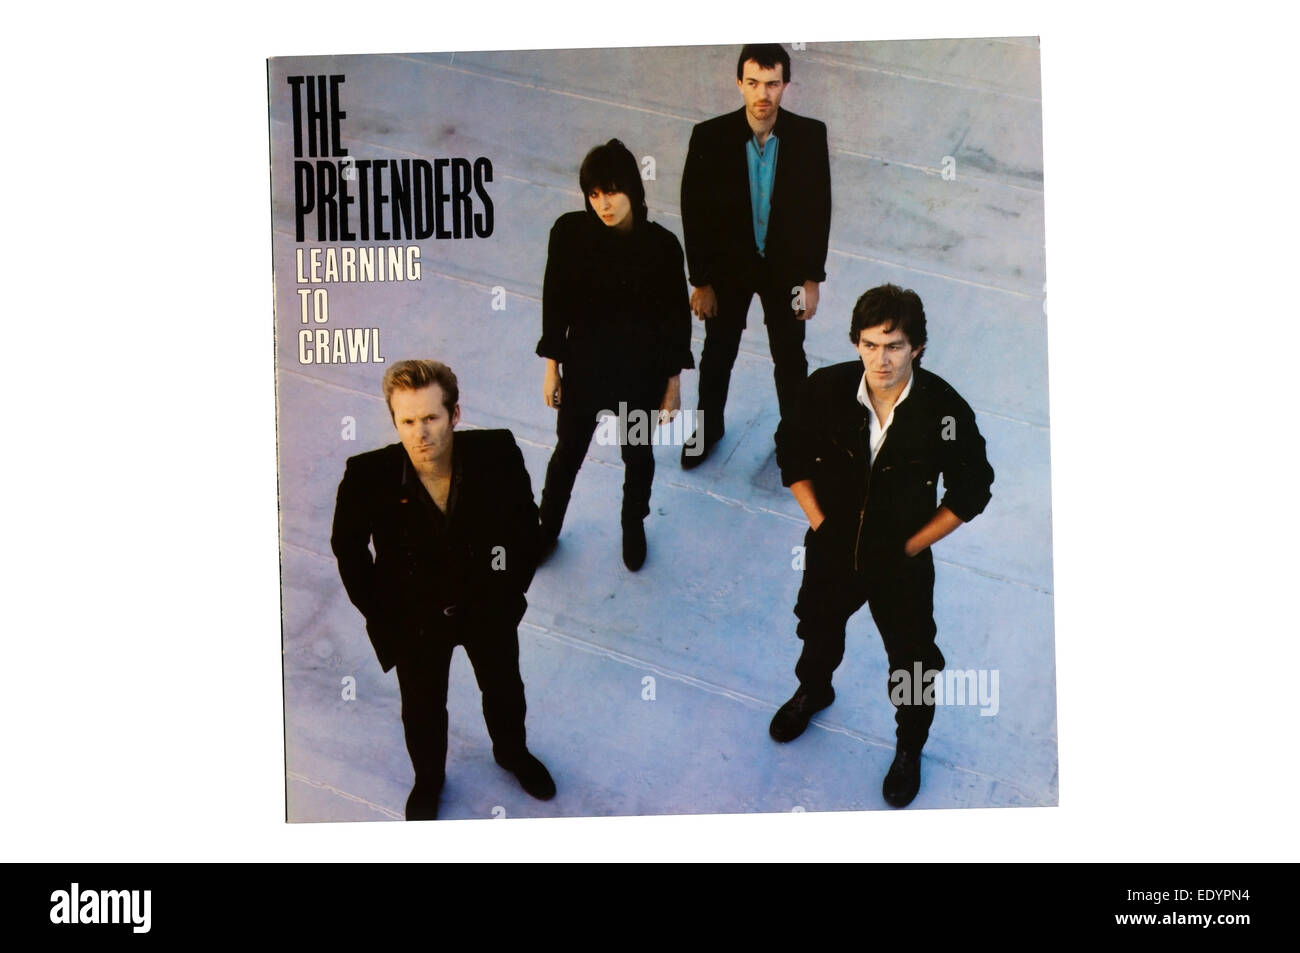 Learning to Crawl was the third album released by The Pretenders in 1984. - Stock Image